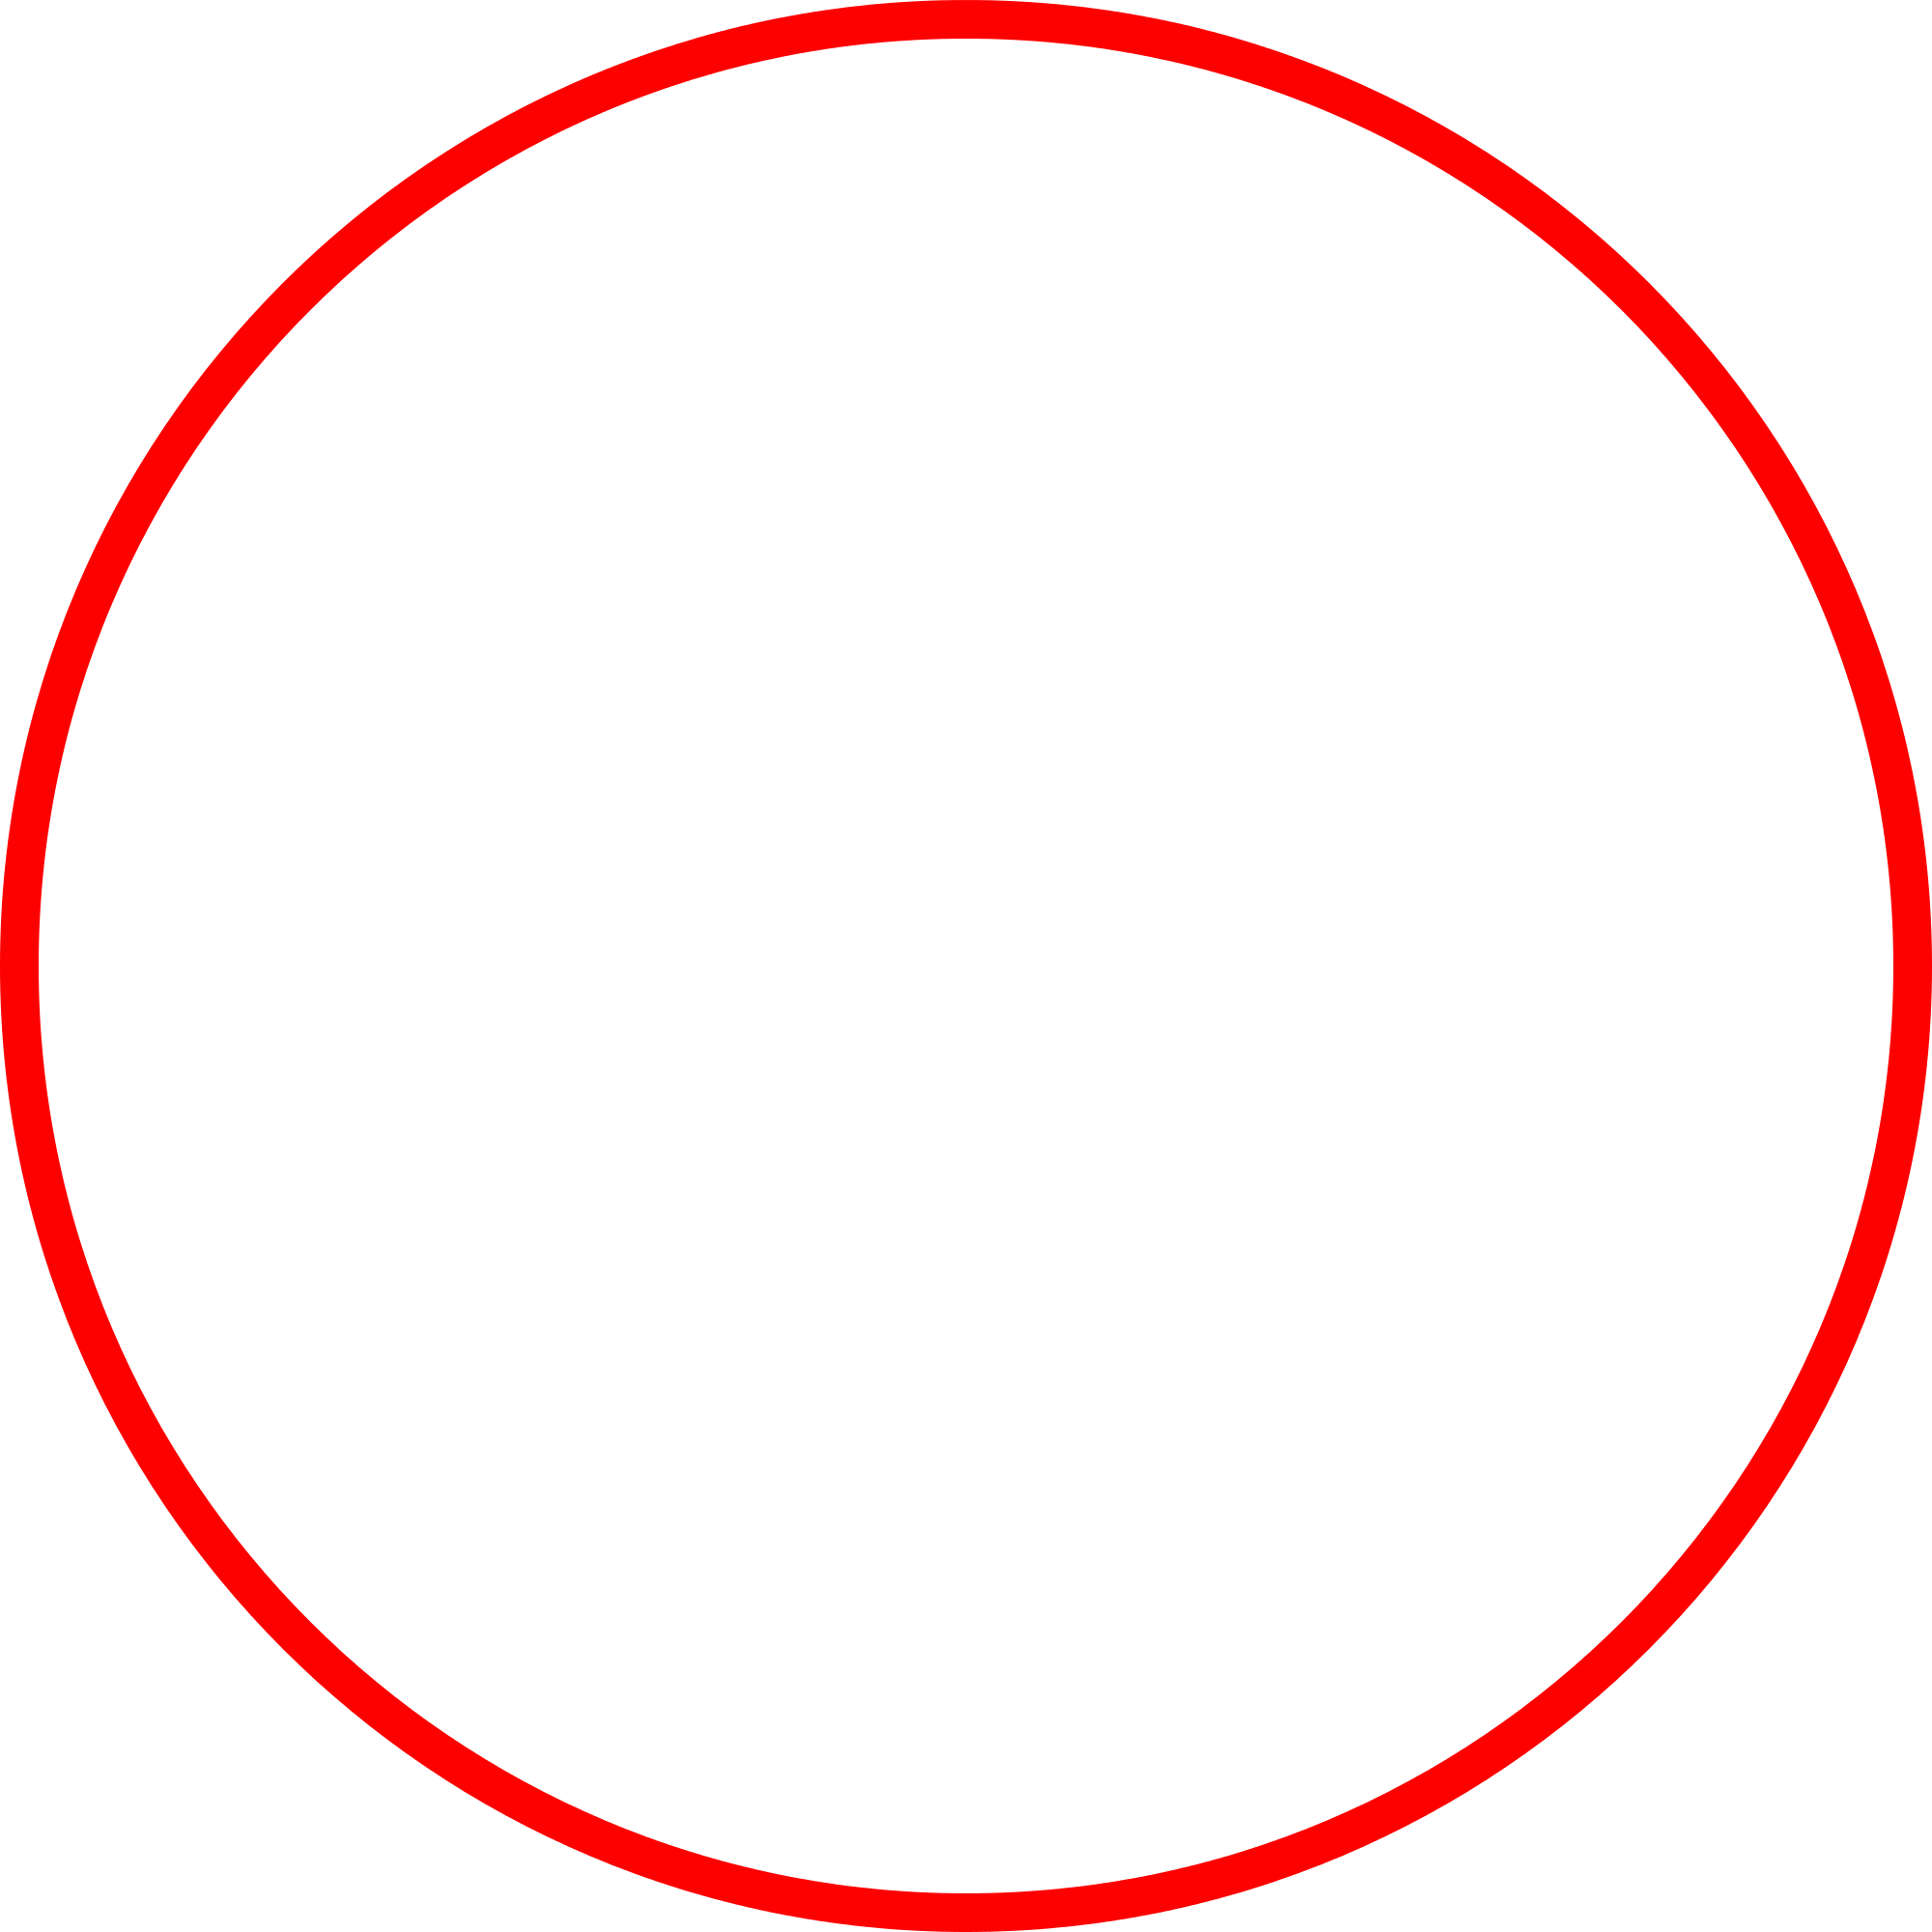 Circle PNG Images Transparent Free Download.